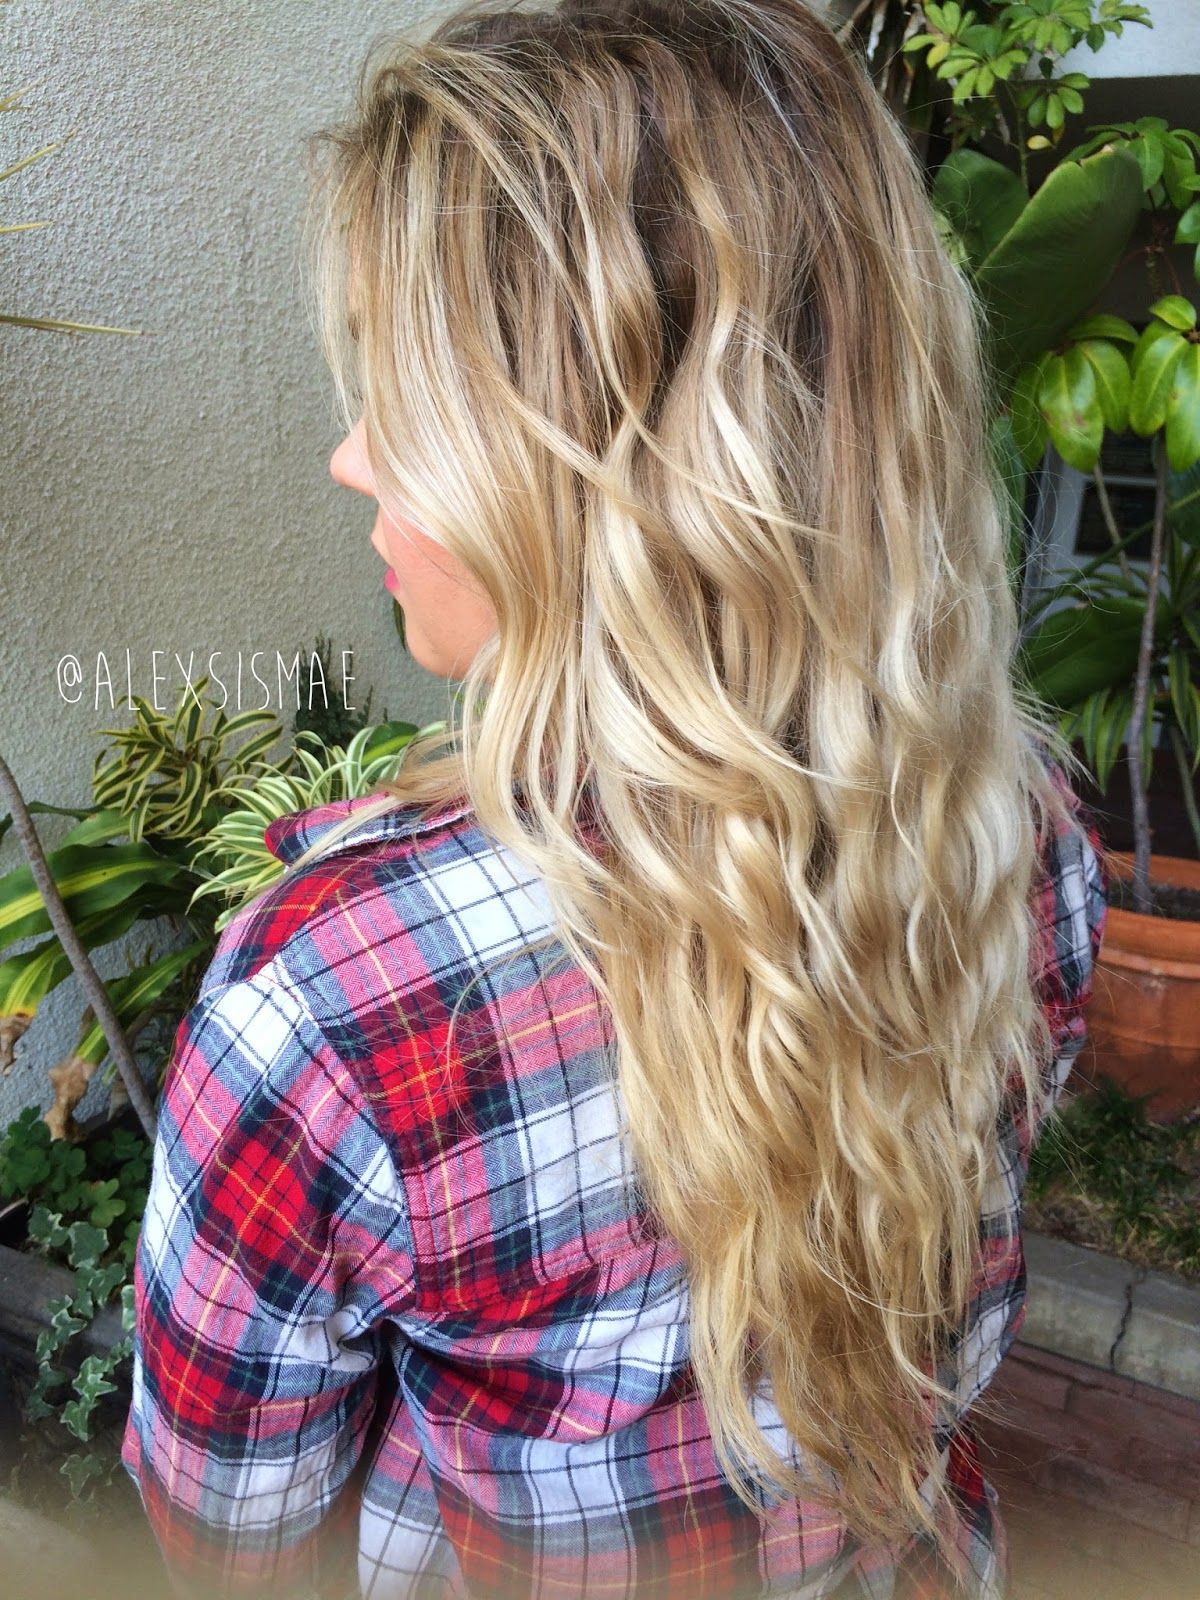 Natural Overnight Beach Waves Hair Styles Hair Beach Hair